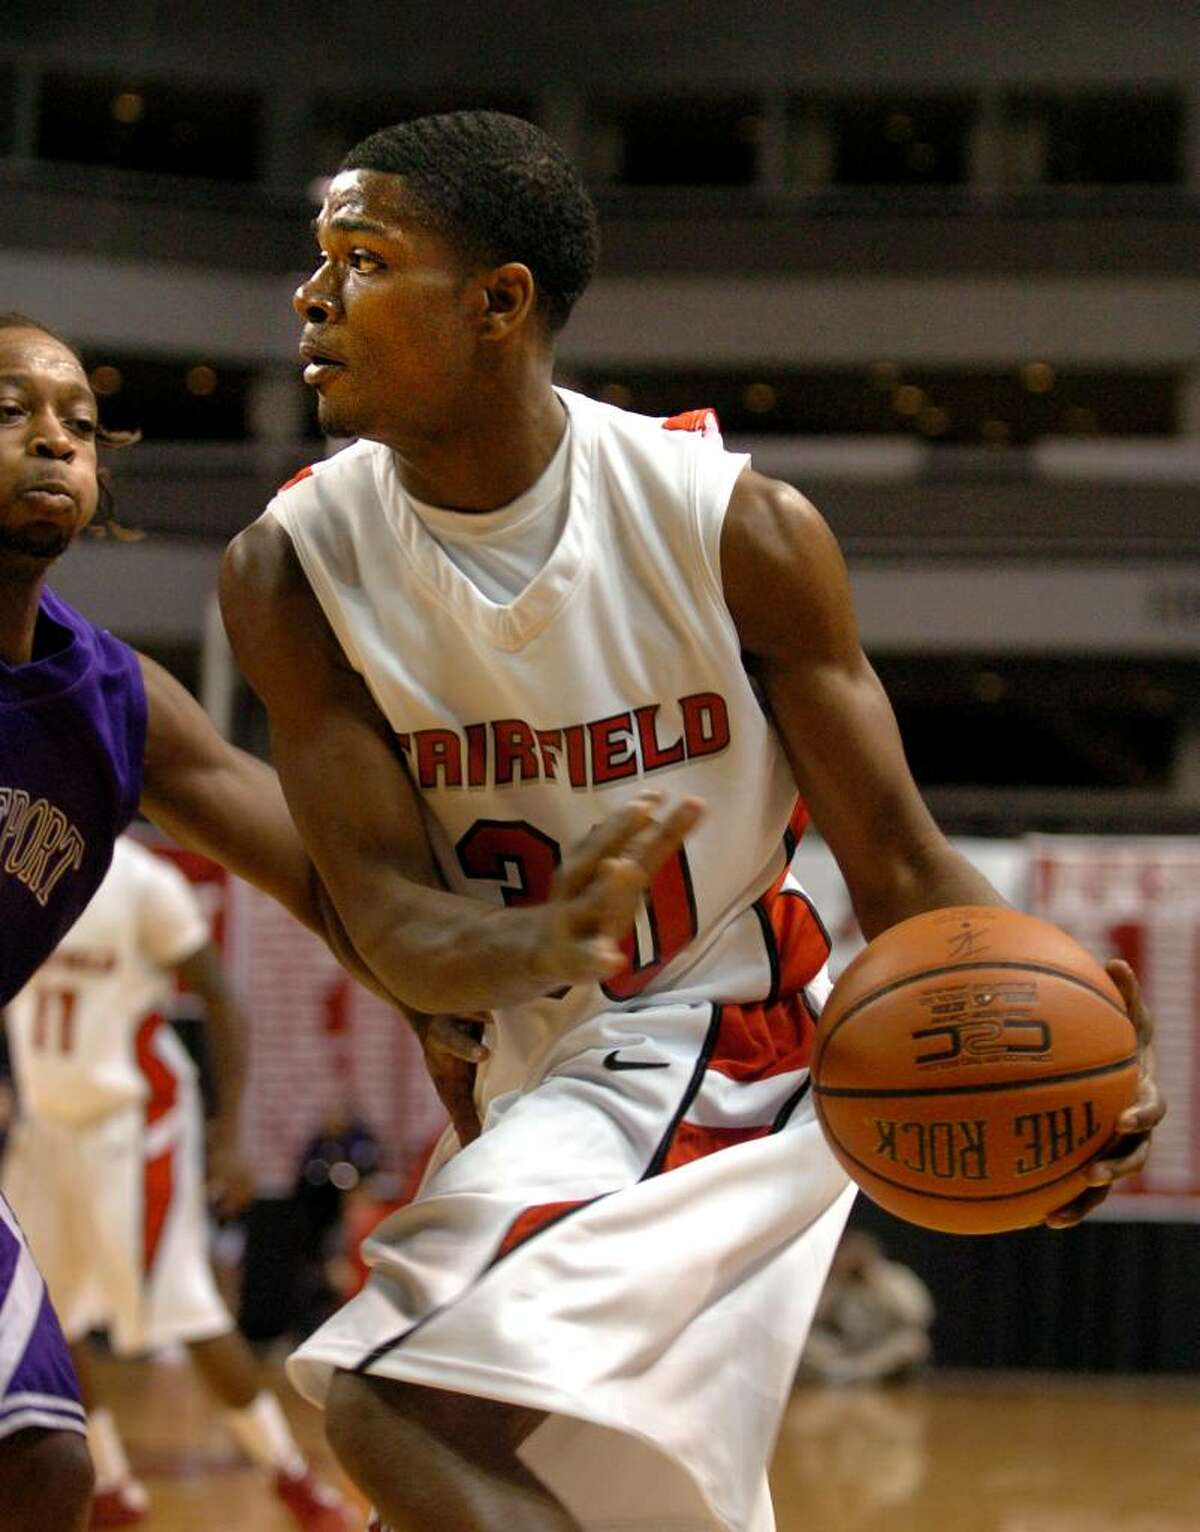 Fairfield University's Shimeek Johnson looks for a hole to pass as Bridgeport University's Steve Martin defends, during men's hoops at the Arena at Harbor Yard in Bridgeport, Conn. on Thursday Nov. 05, 2009.